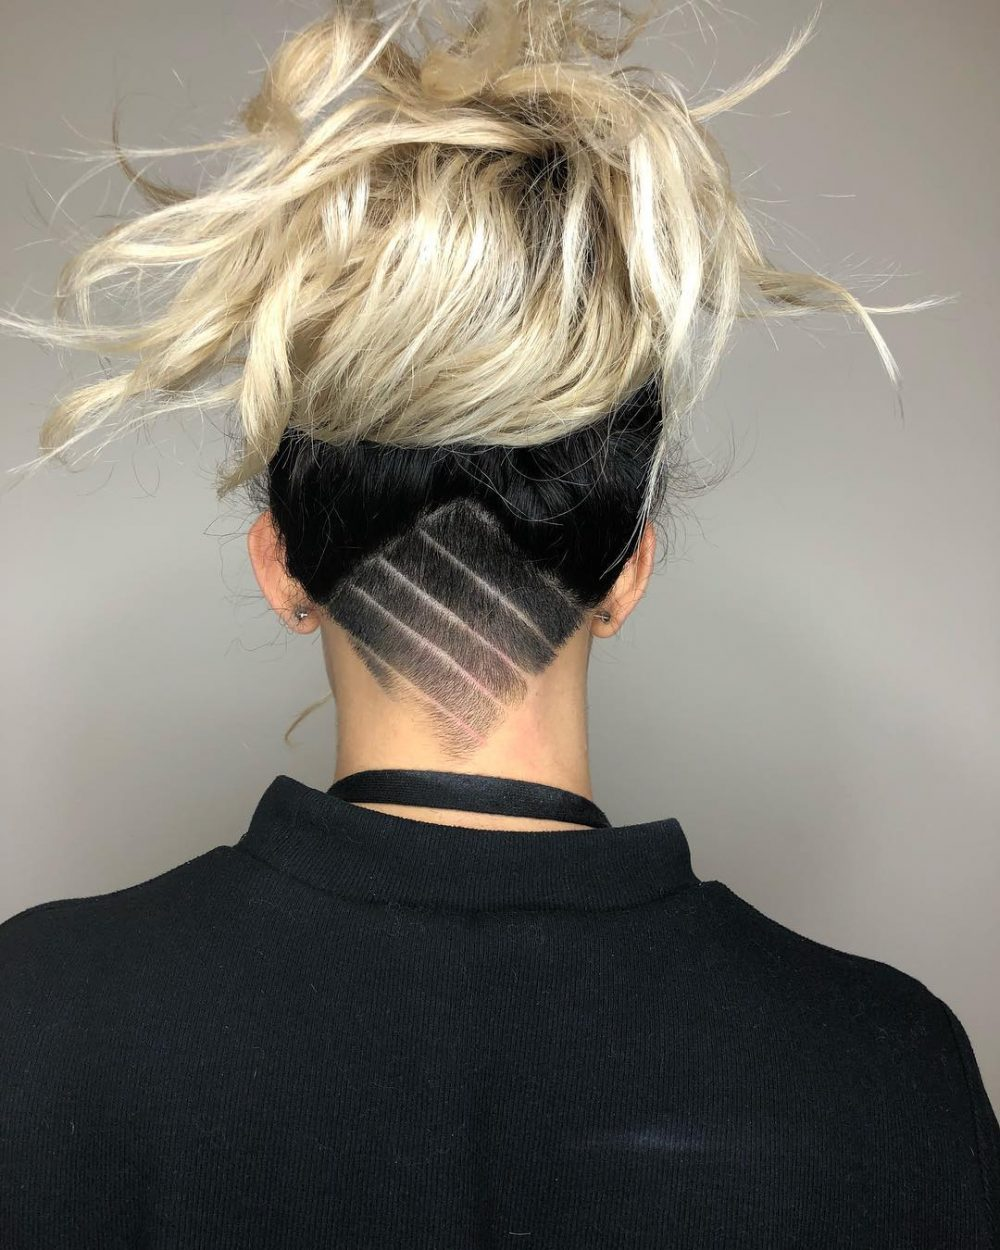 Dope Design hairstyle